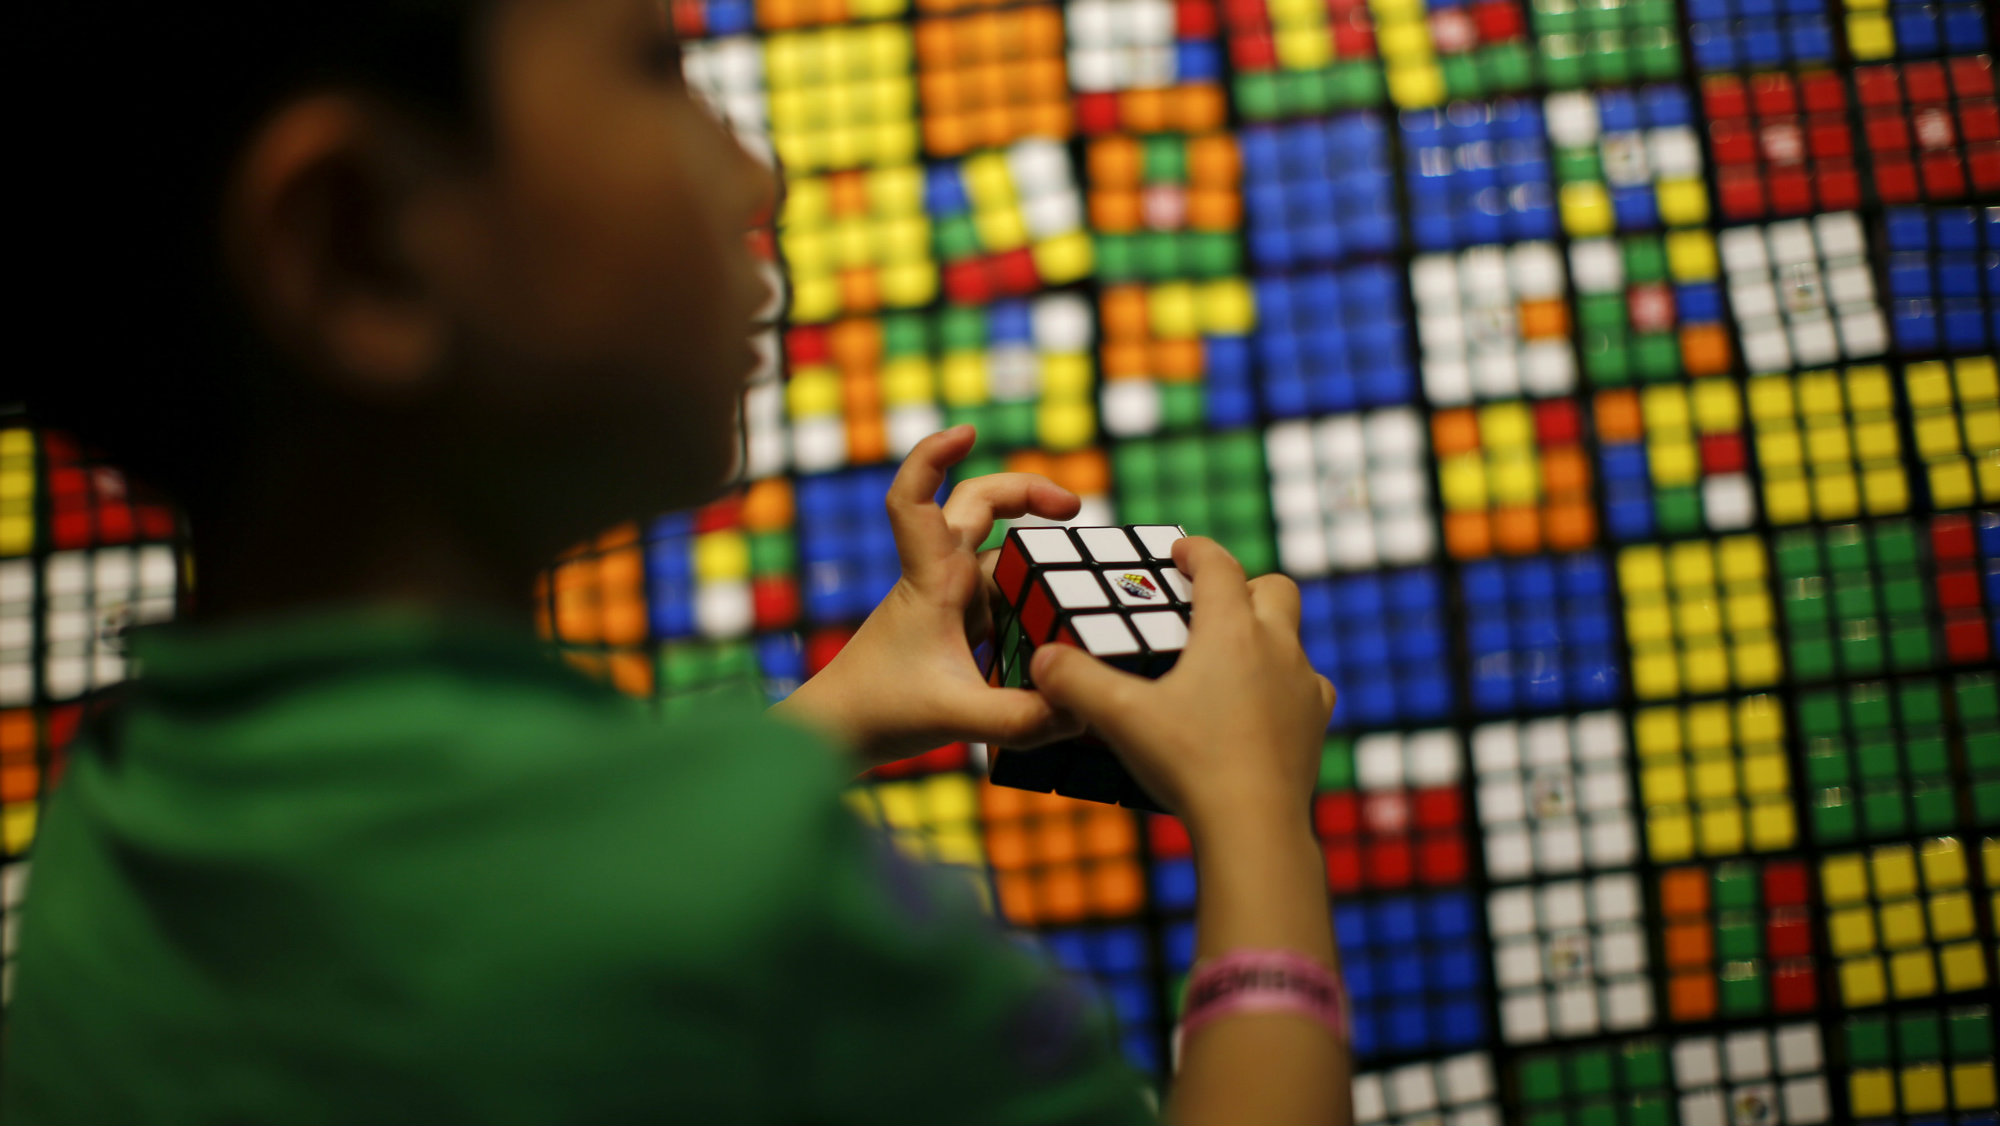 it took rubik's cube inventor erno rubik a month to solve his own